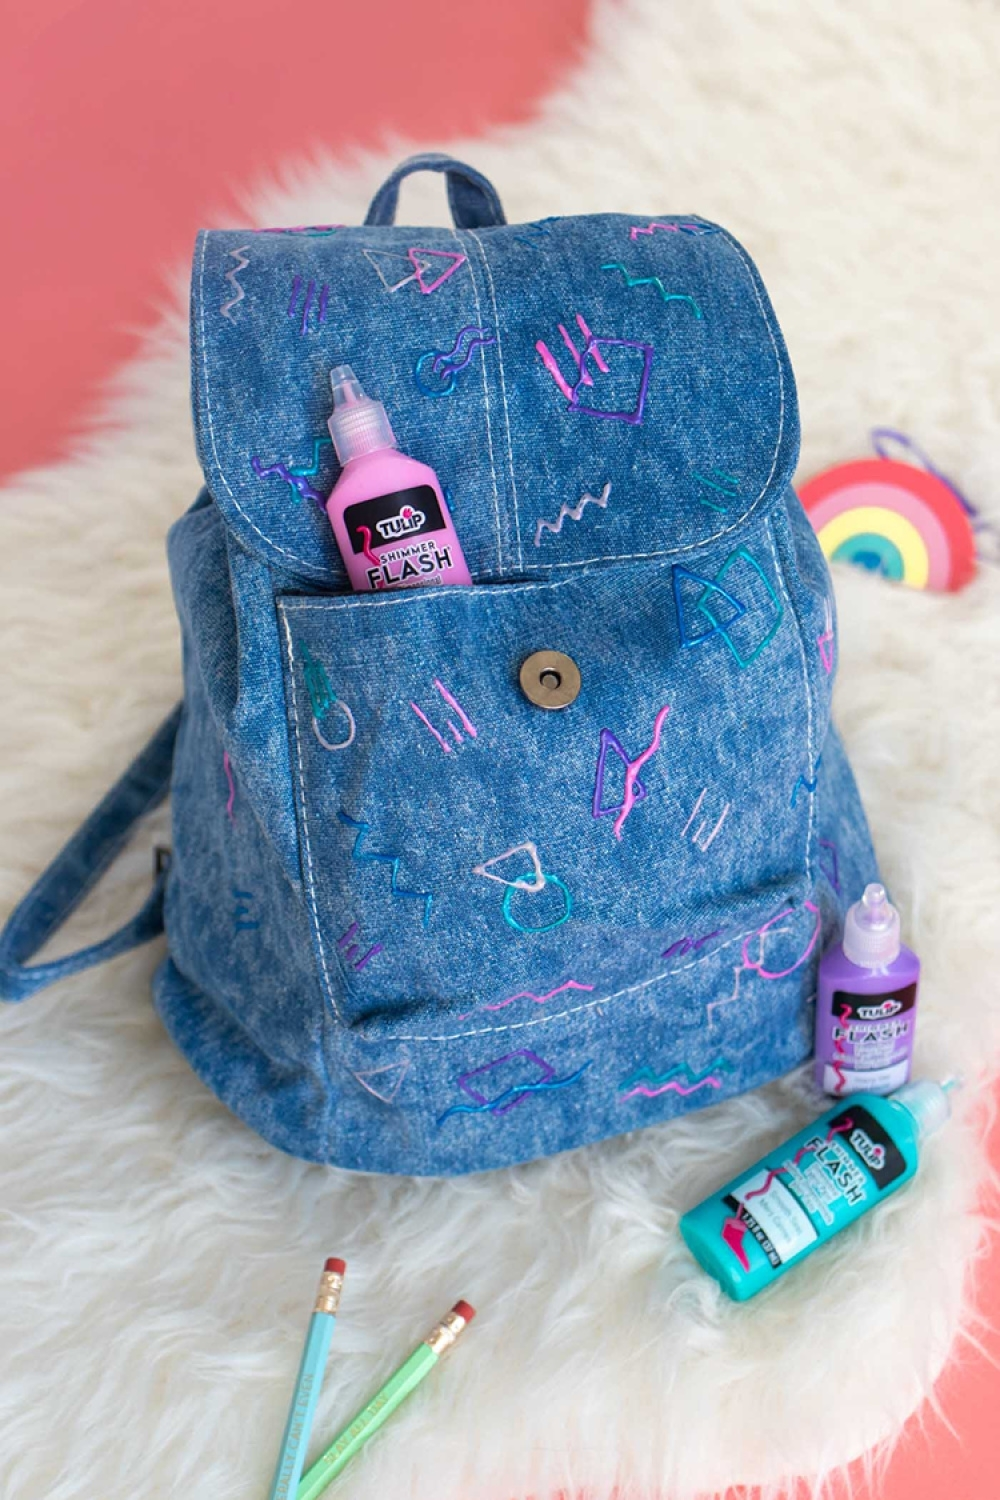 Tulip 80s-Inspired Denim Backpack